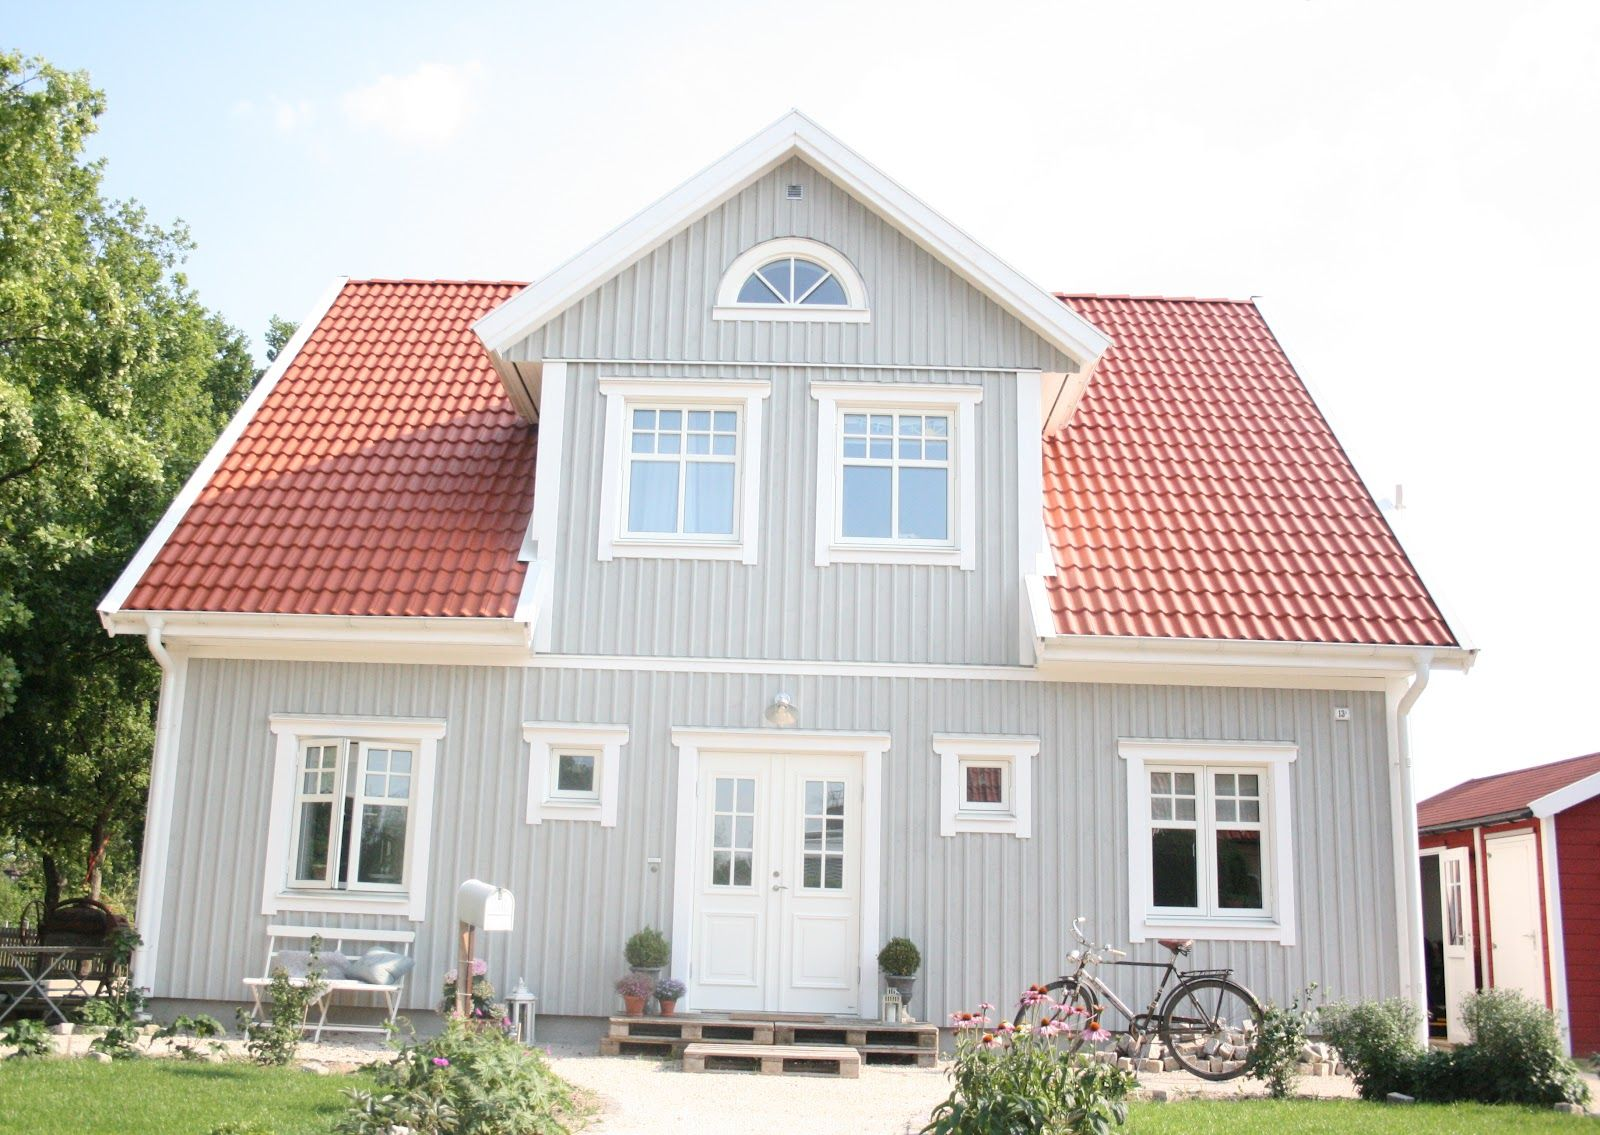 Lille sverige hus scandinavia red roof house house - Online exterior house color tool ...